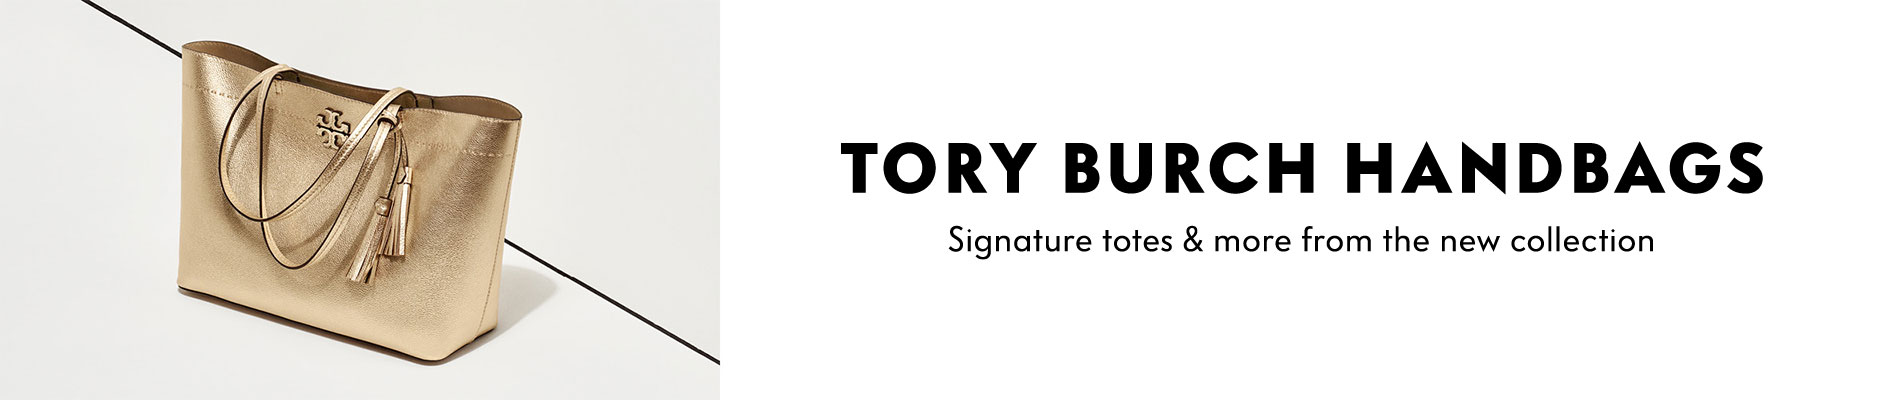 Tory Burch Handbags - signature totes & more from the new collection